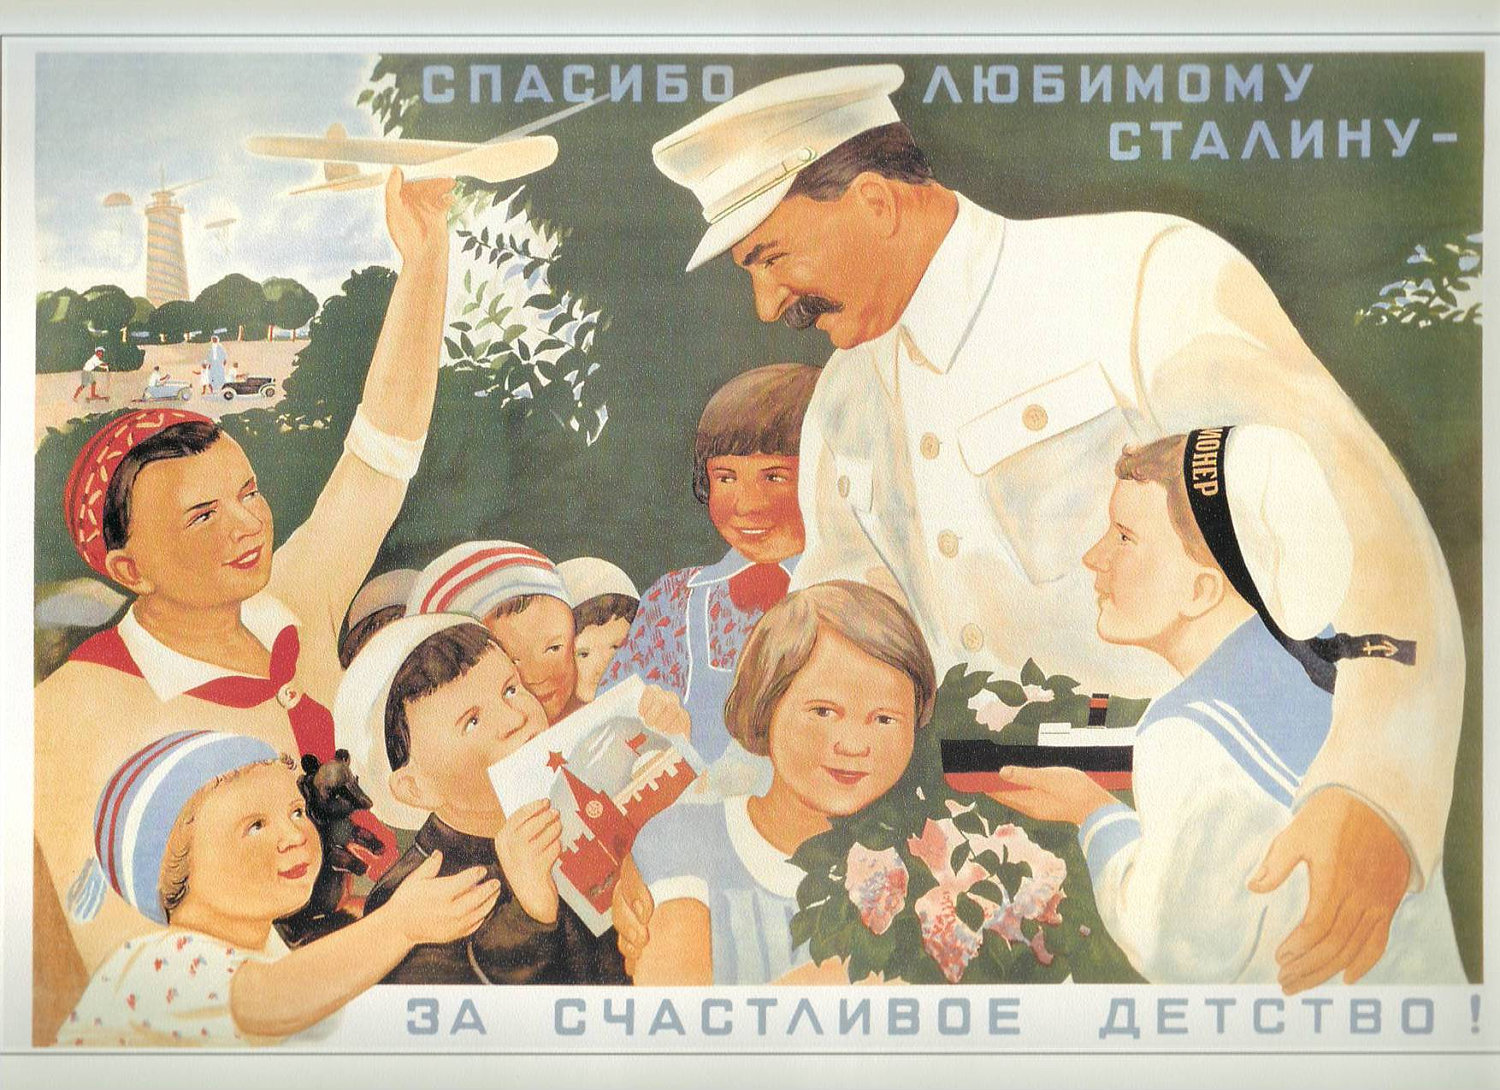 stalin did his rule benefit russian Stalin did his rule benefit russian society and the russian people women in totalitarian society women in fascist italy women in stalins russia.